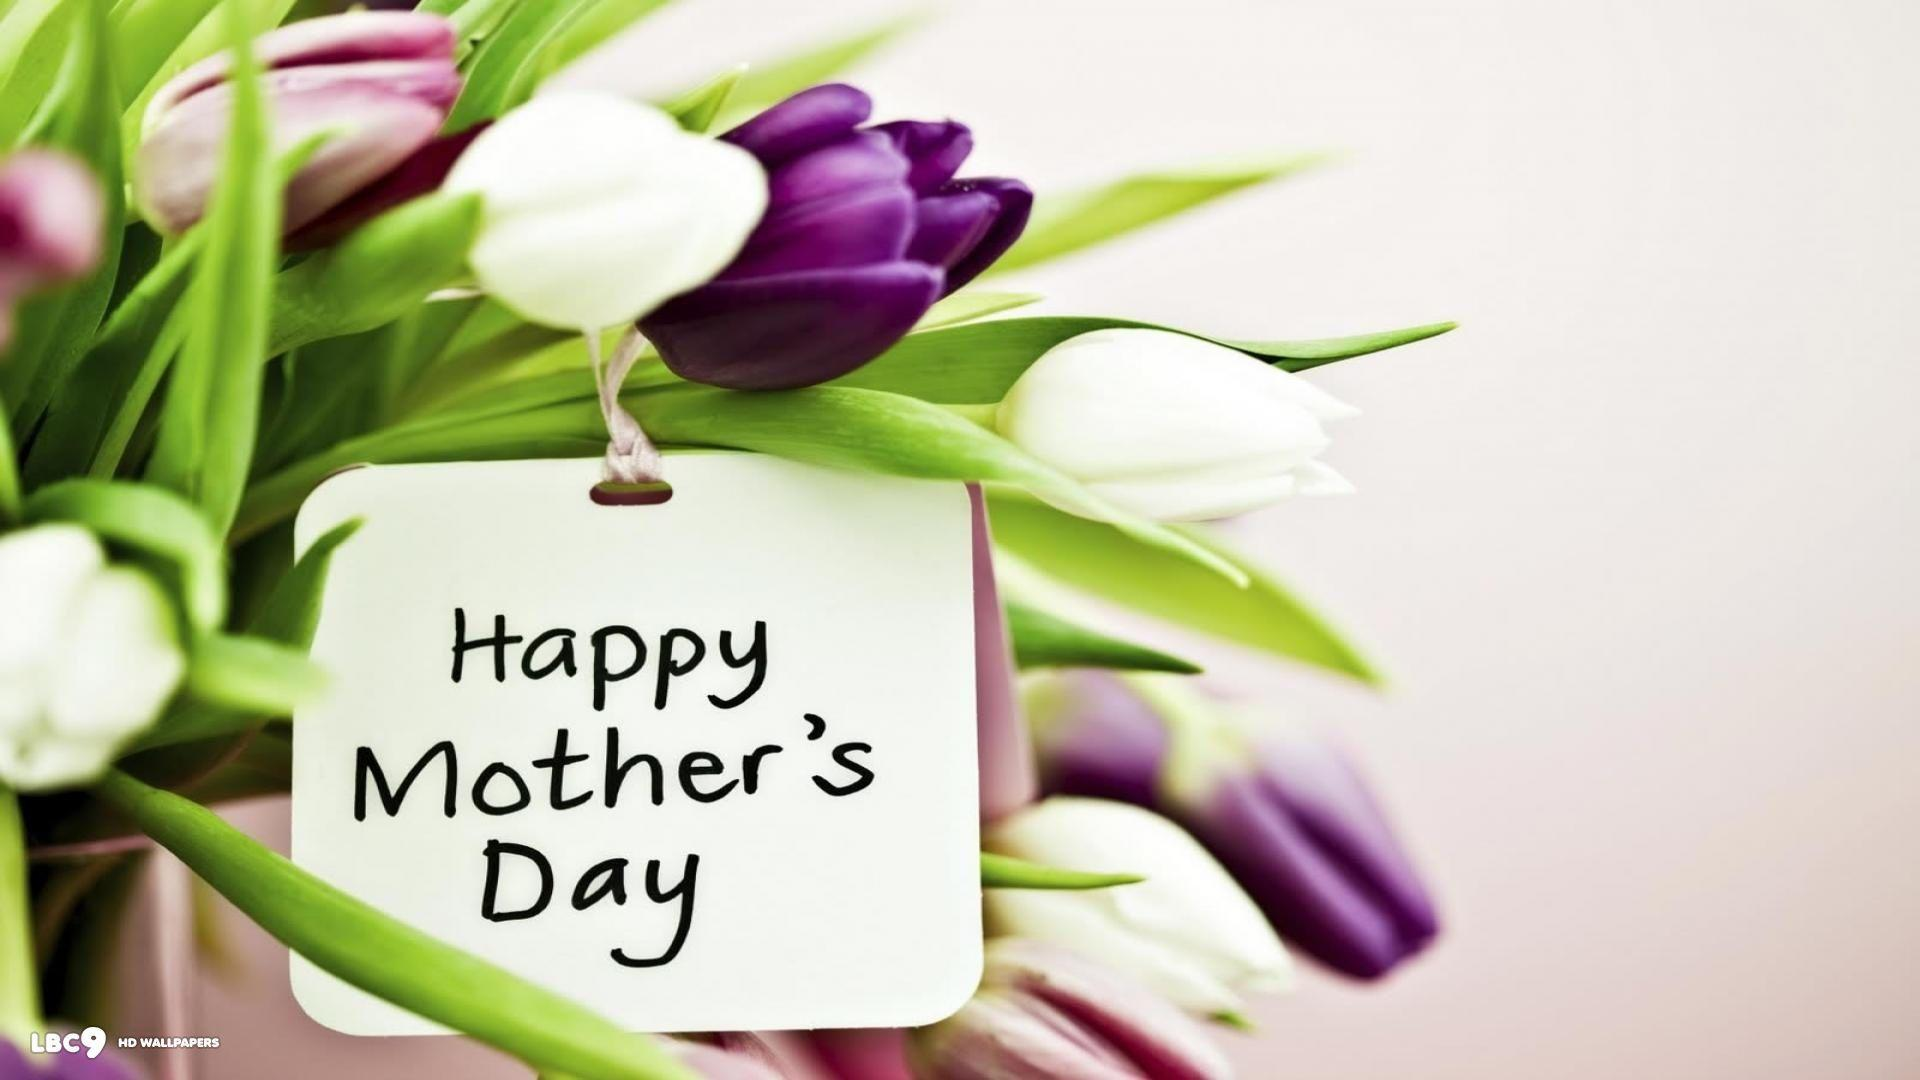 mothers day wallpaper 5/6 | holidays hd backgrounds